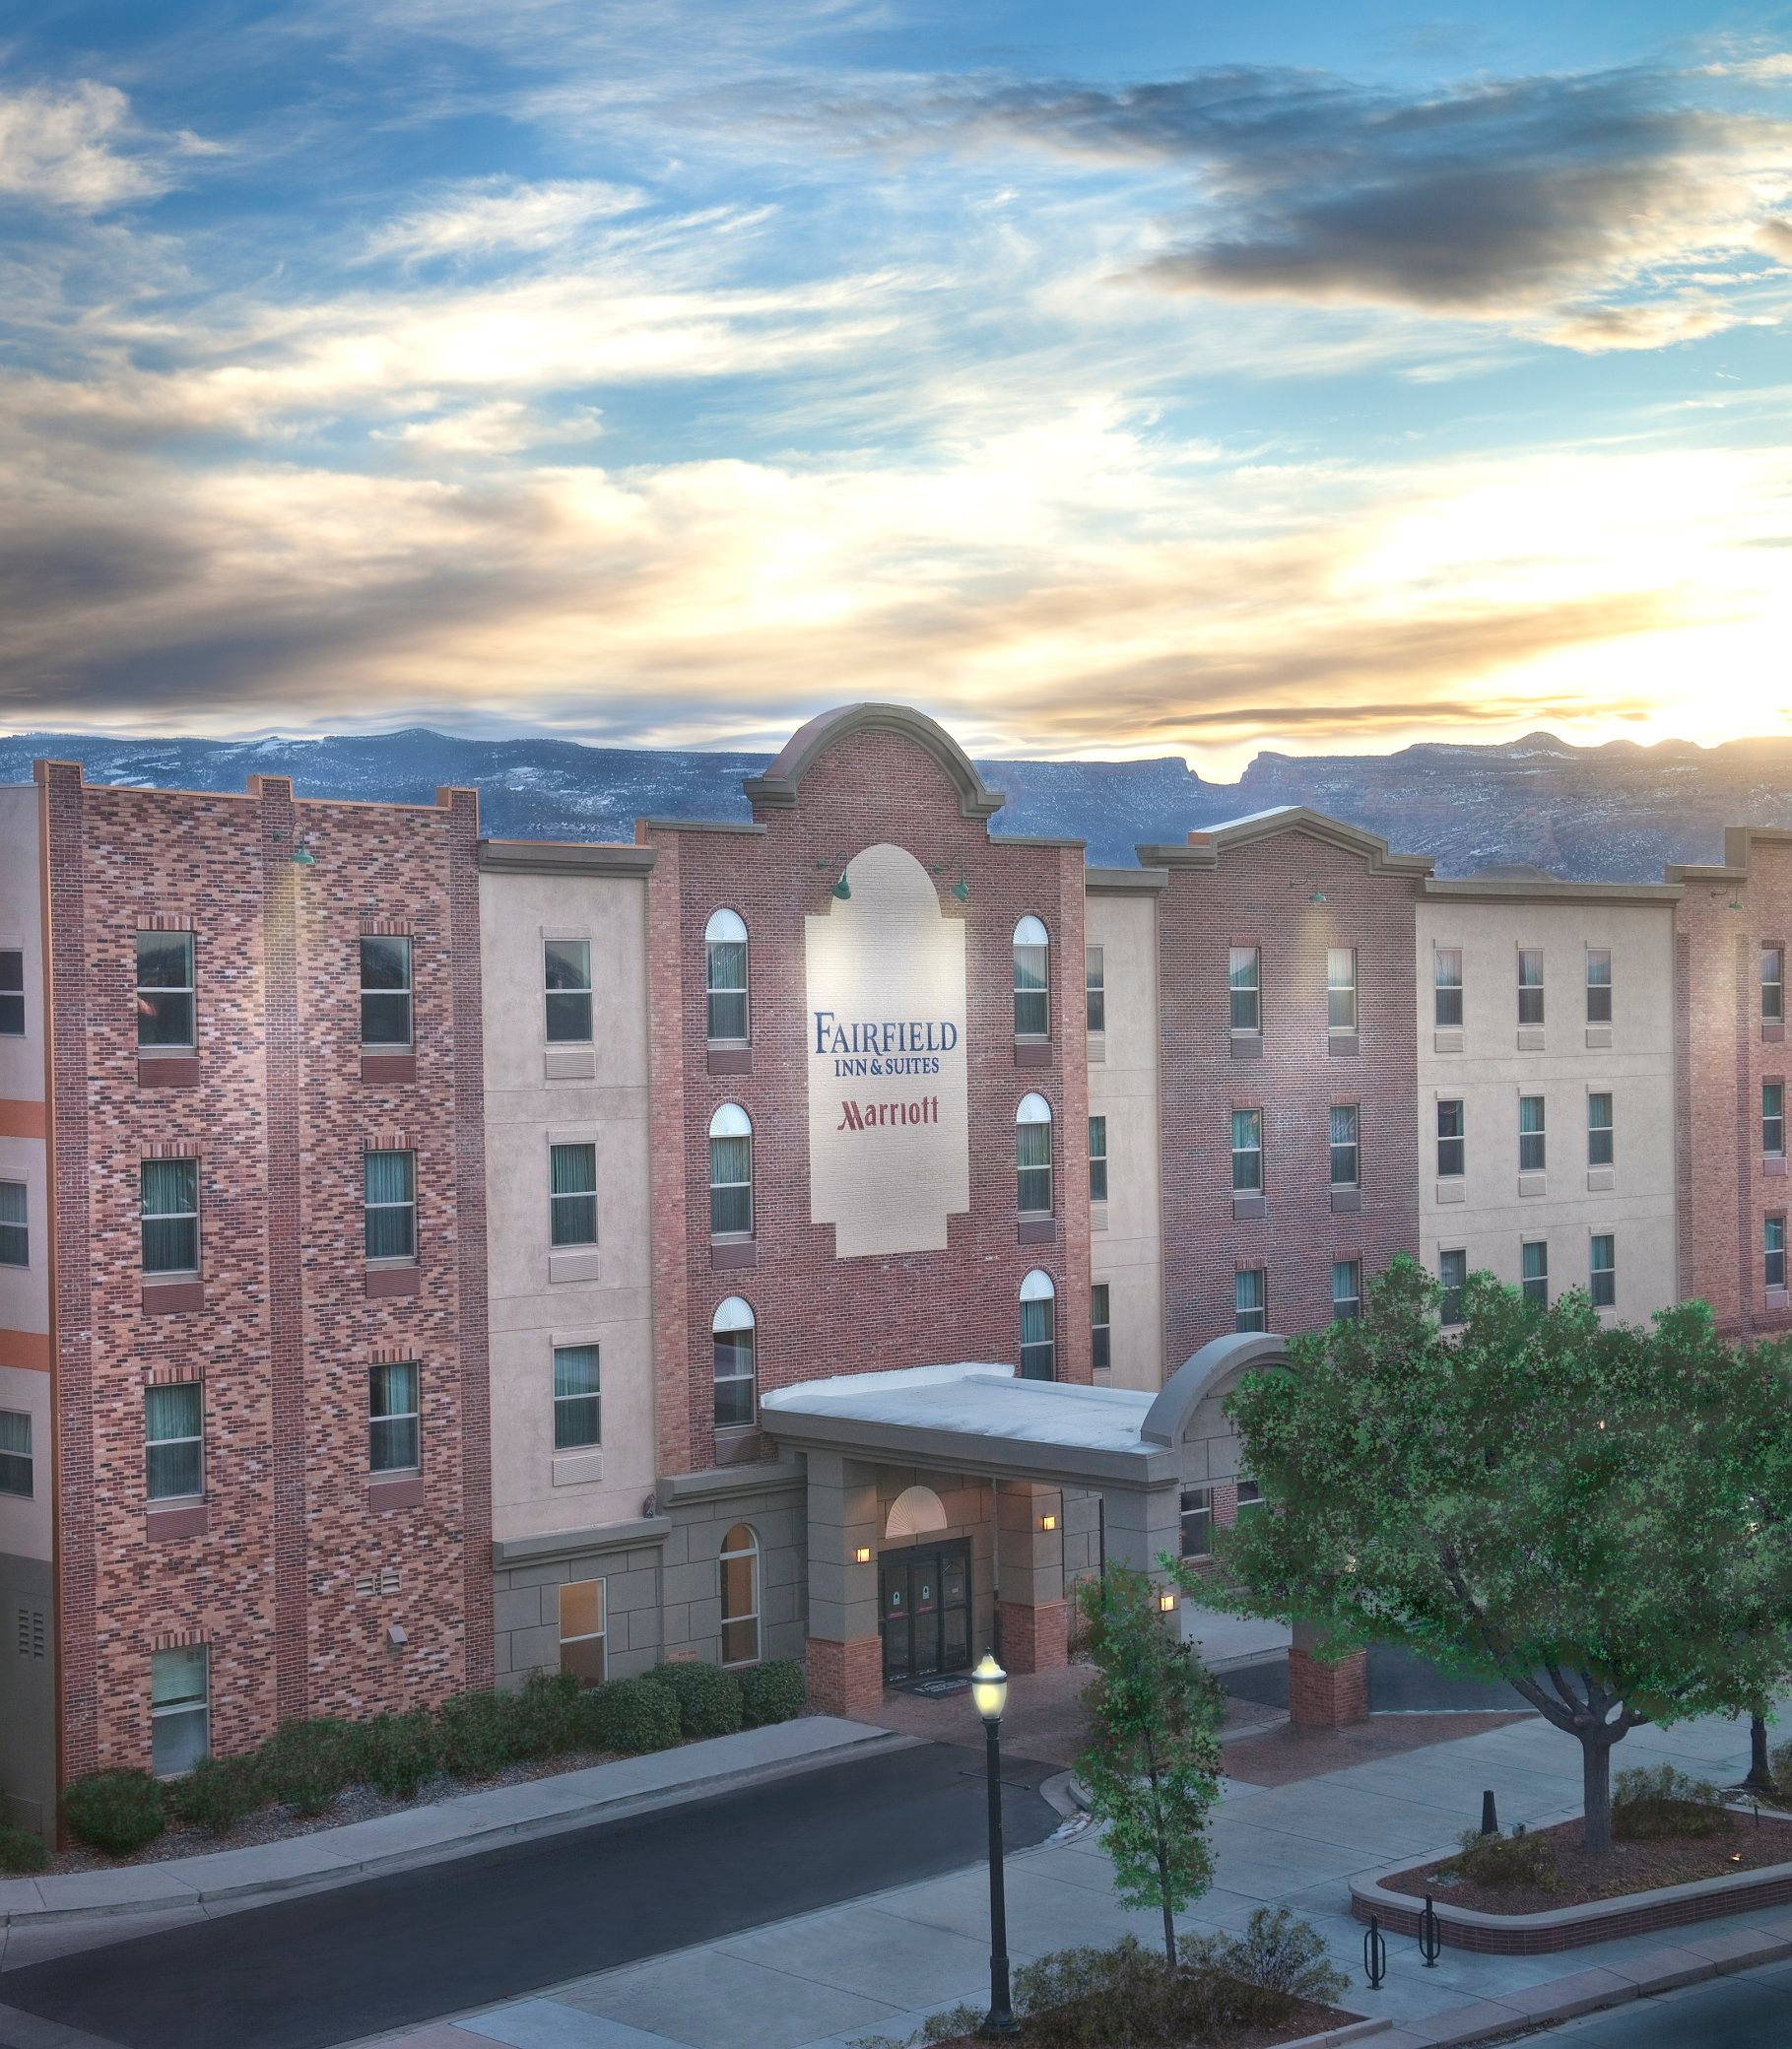 Fairfield Inn & Suites by Marriott Grand Junction Downtown/Historic Main Street image 10